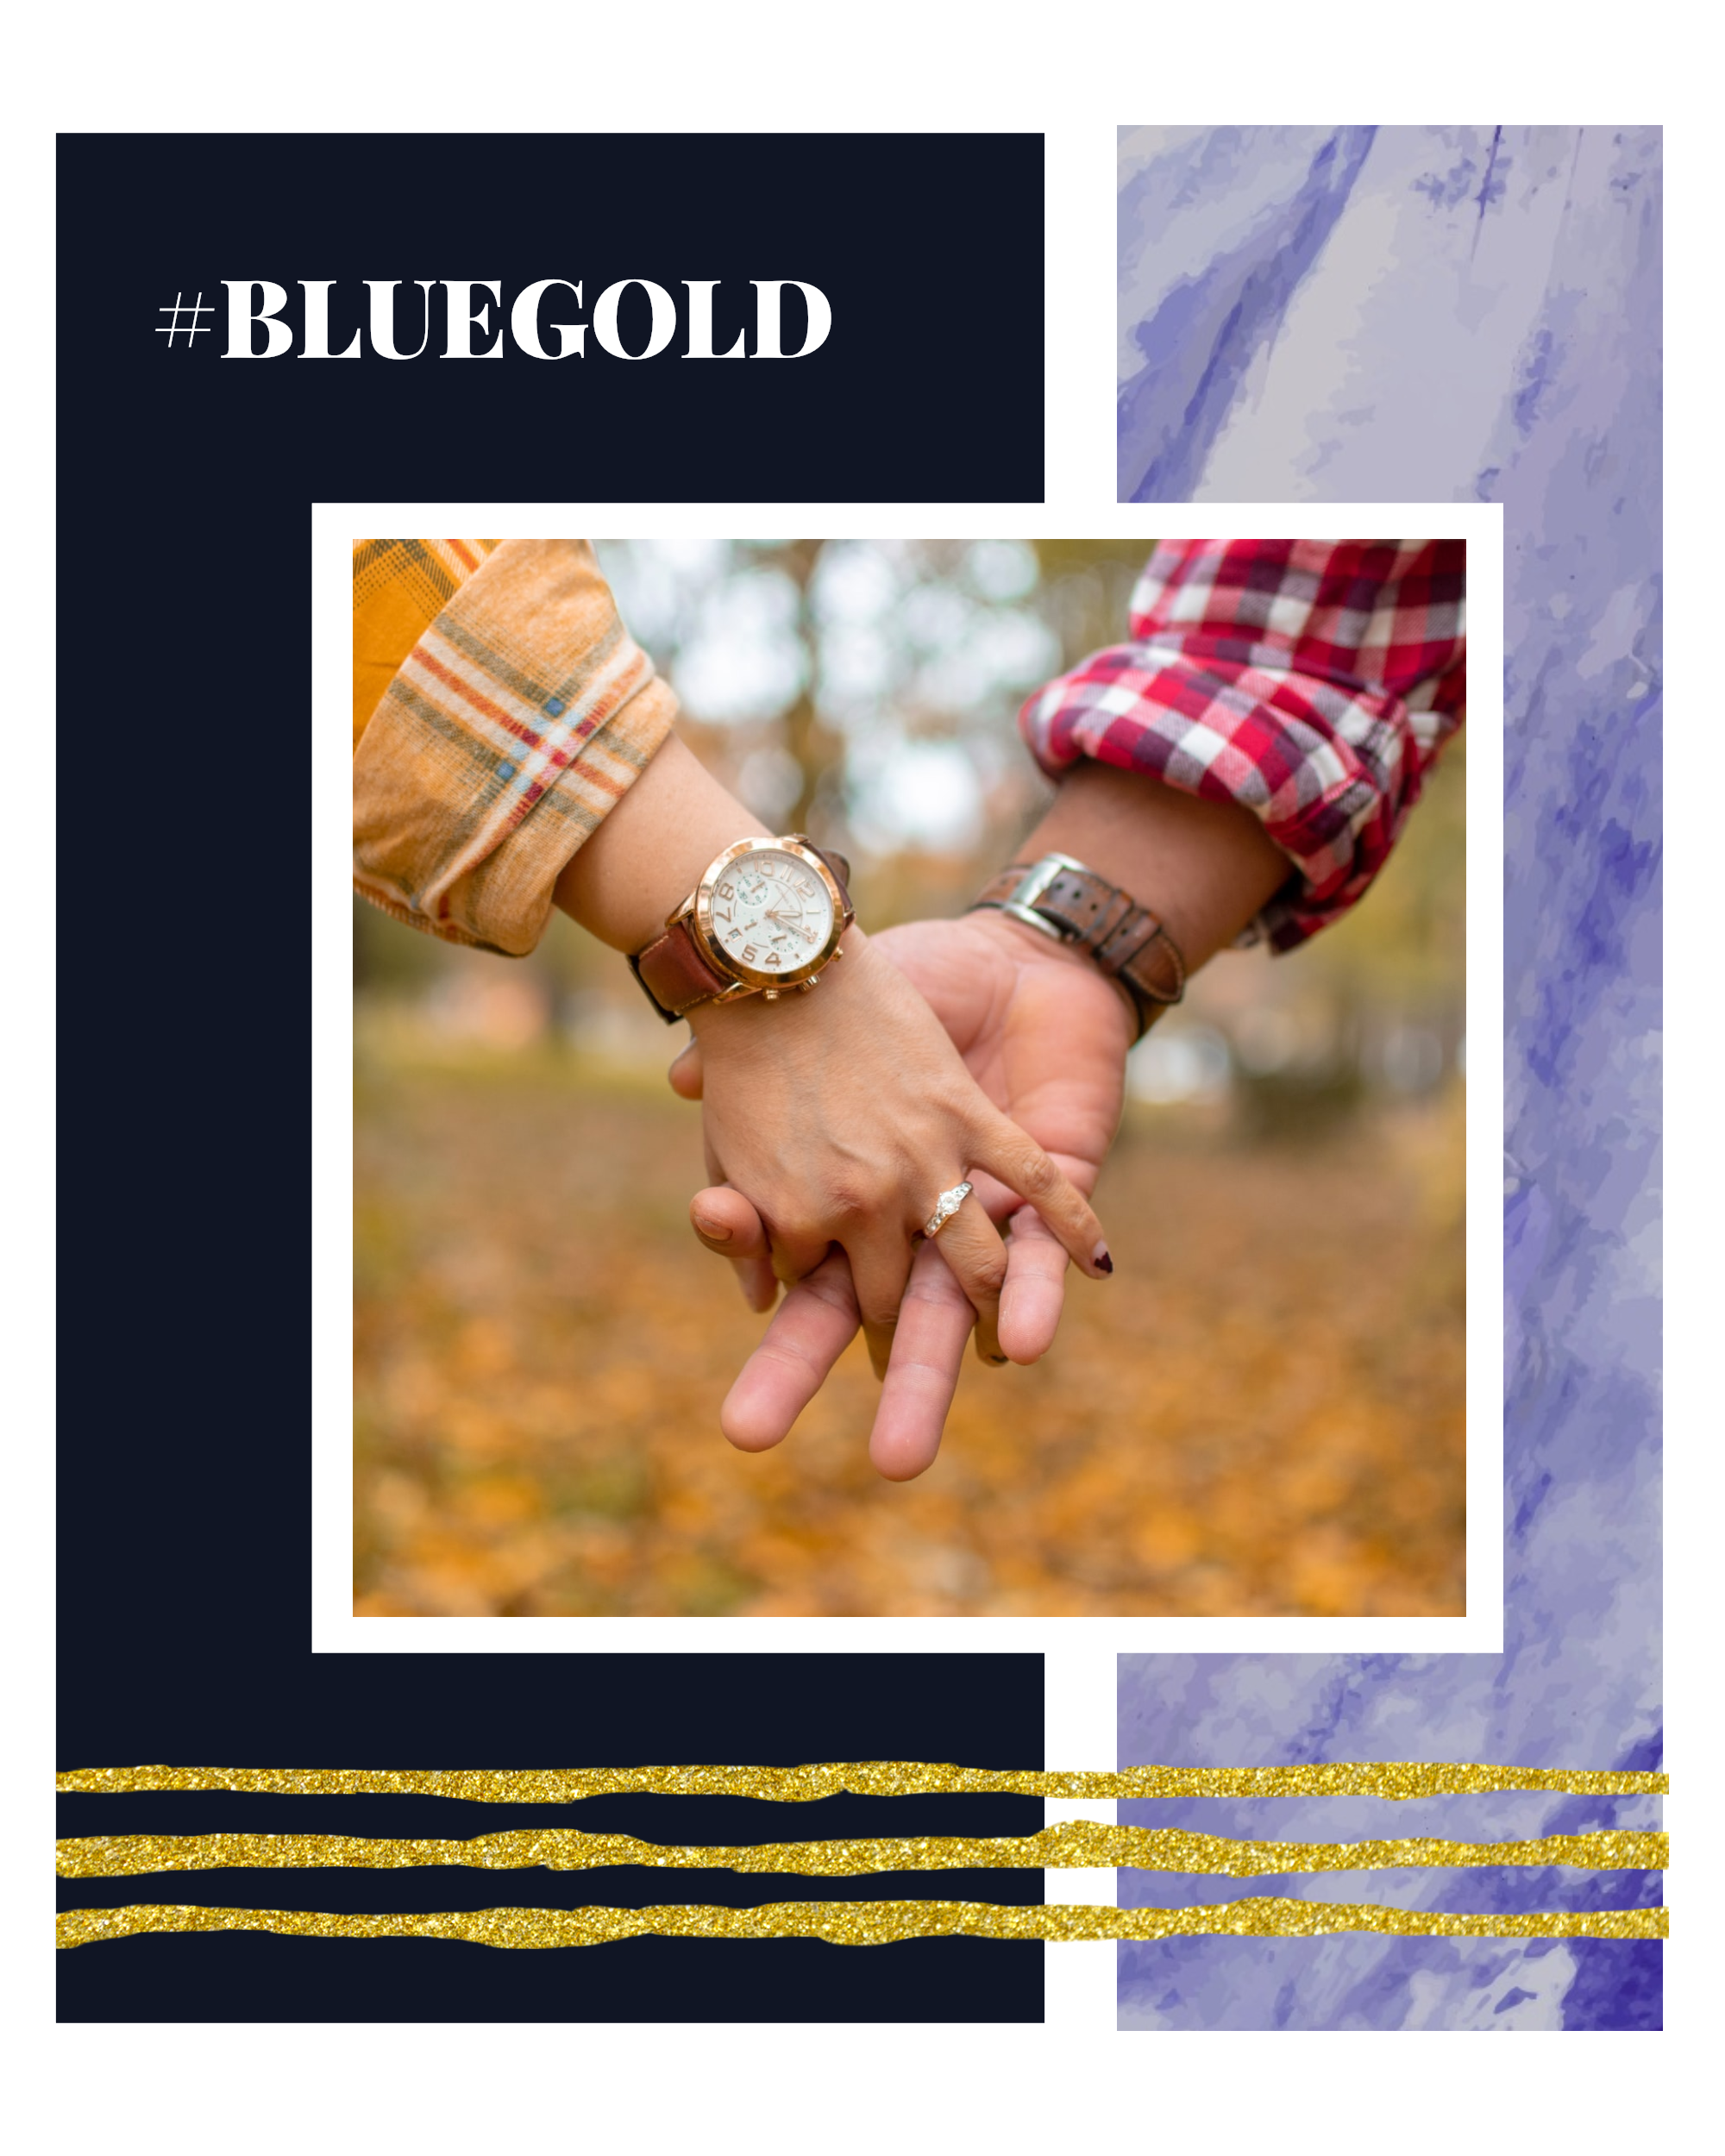 #bluegold Post collection - #BLUEGOLD Instagram Post Template